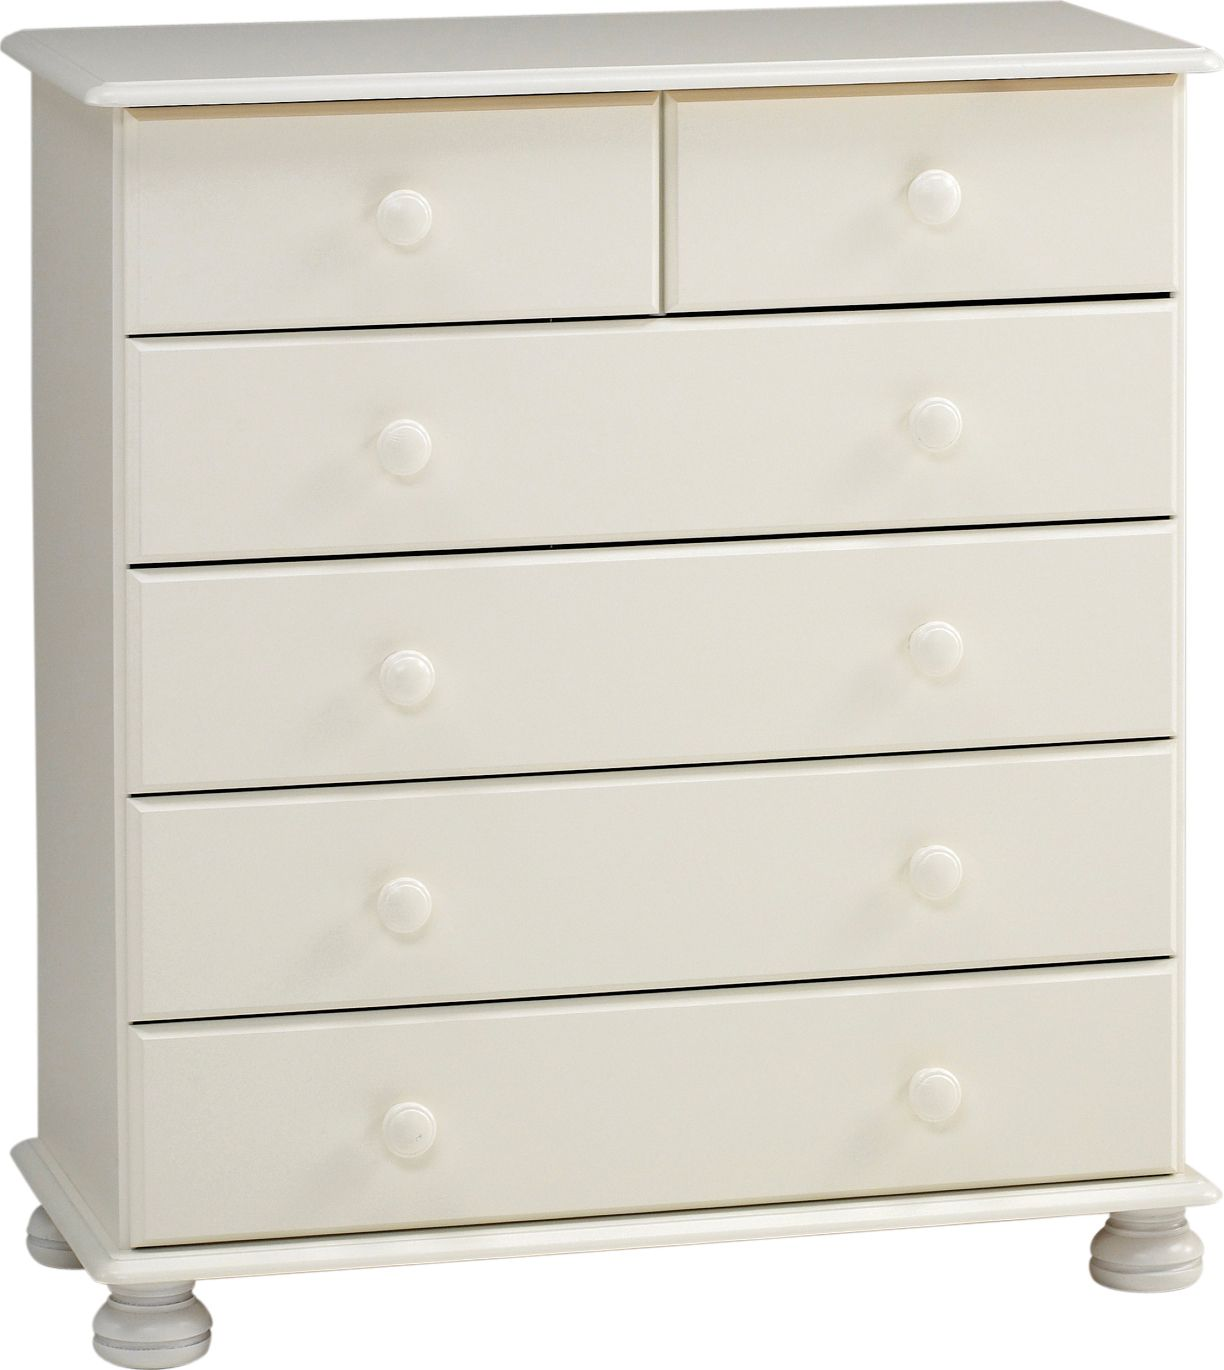 Malmo White 2 Over 4 Chest Of Drawers H 901mm W 823mm